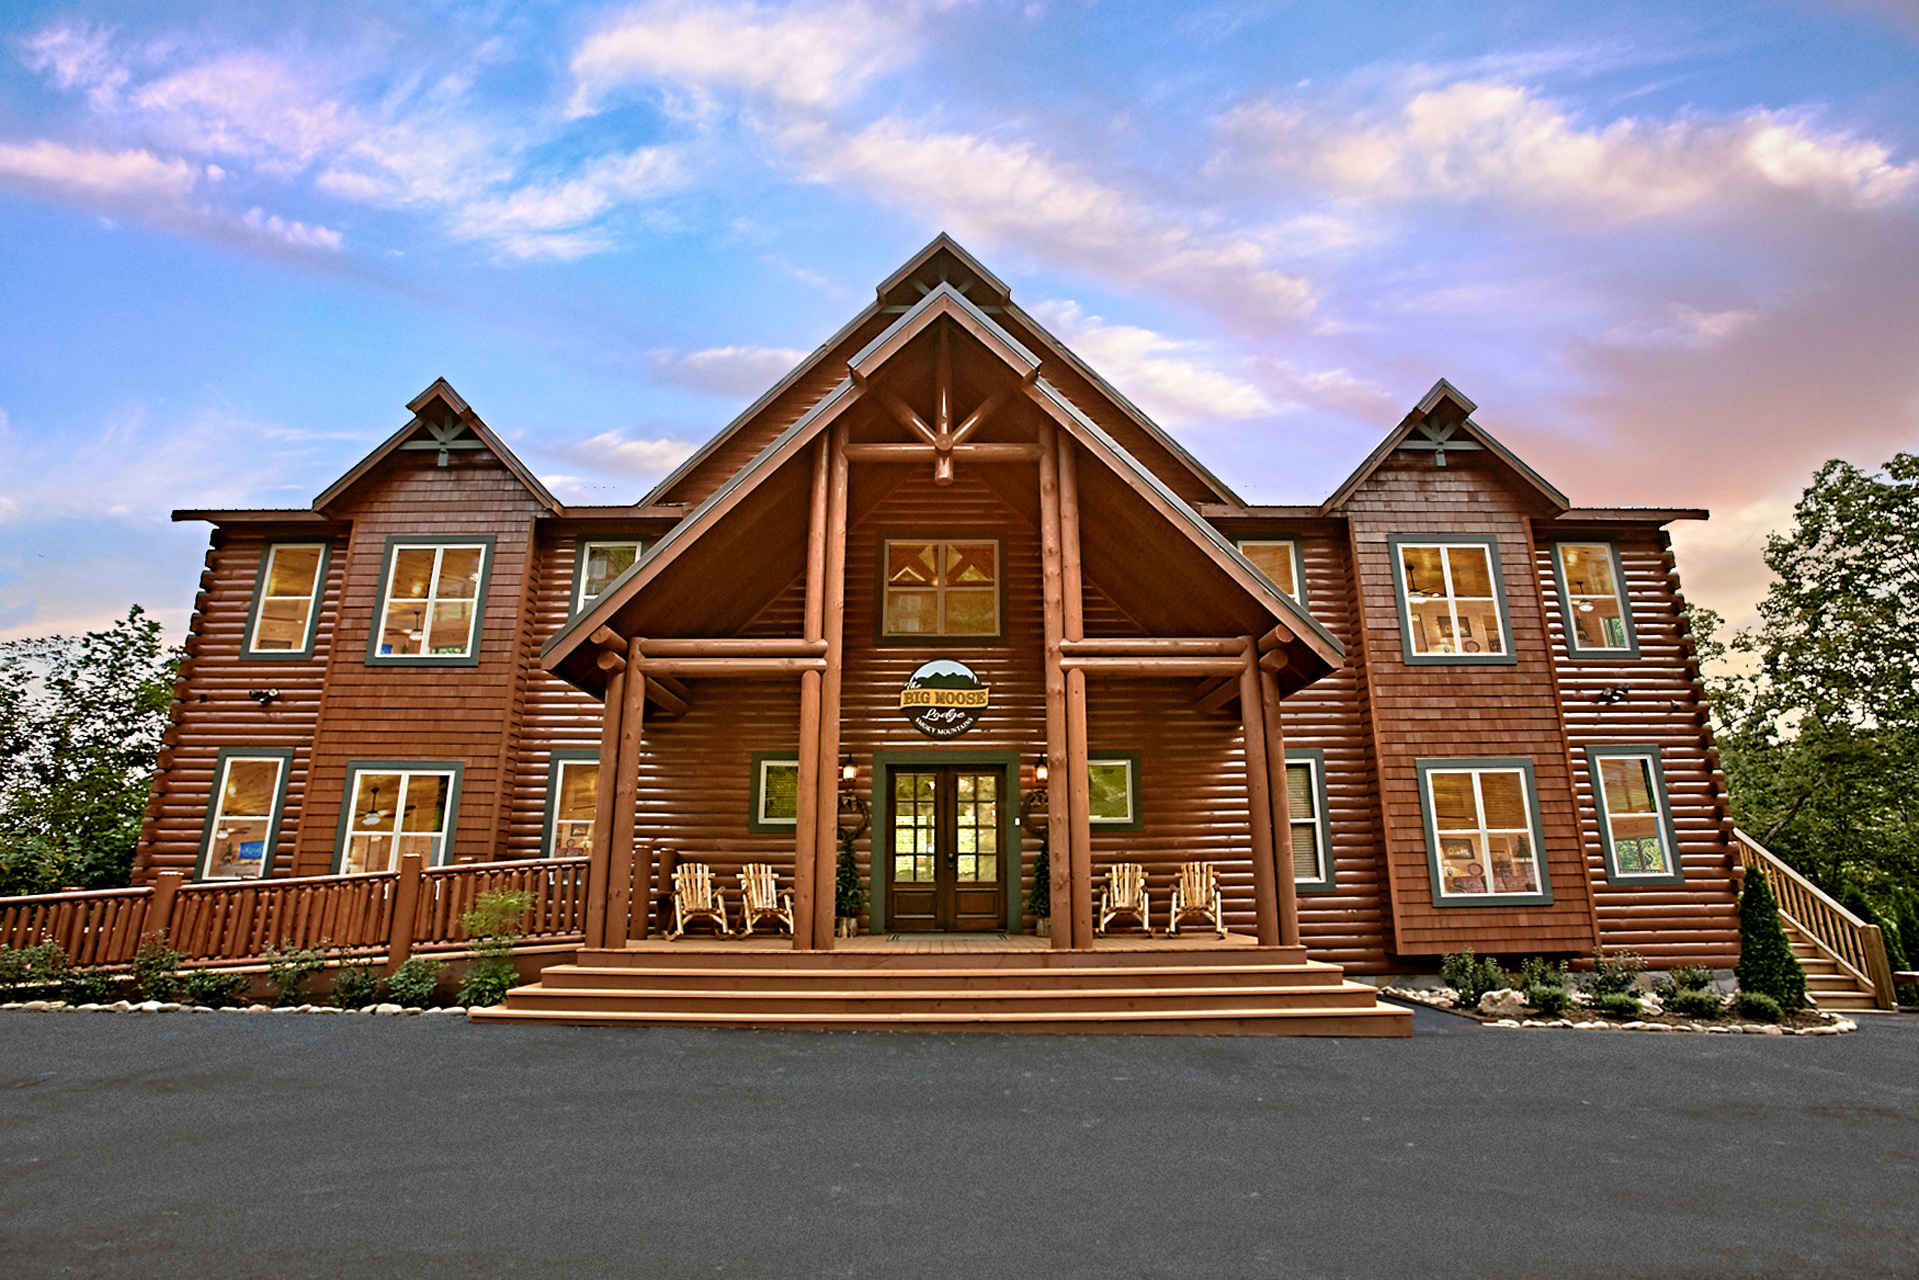 Cabins With Indoor Pool In Pigeon Forge Gatlinburg